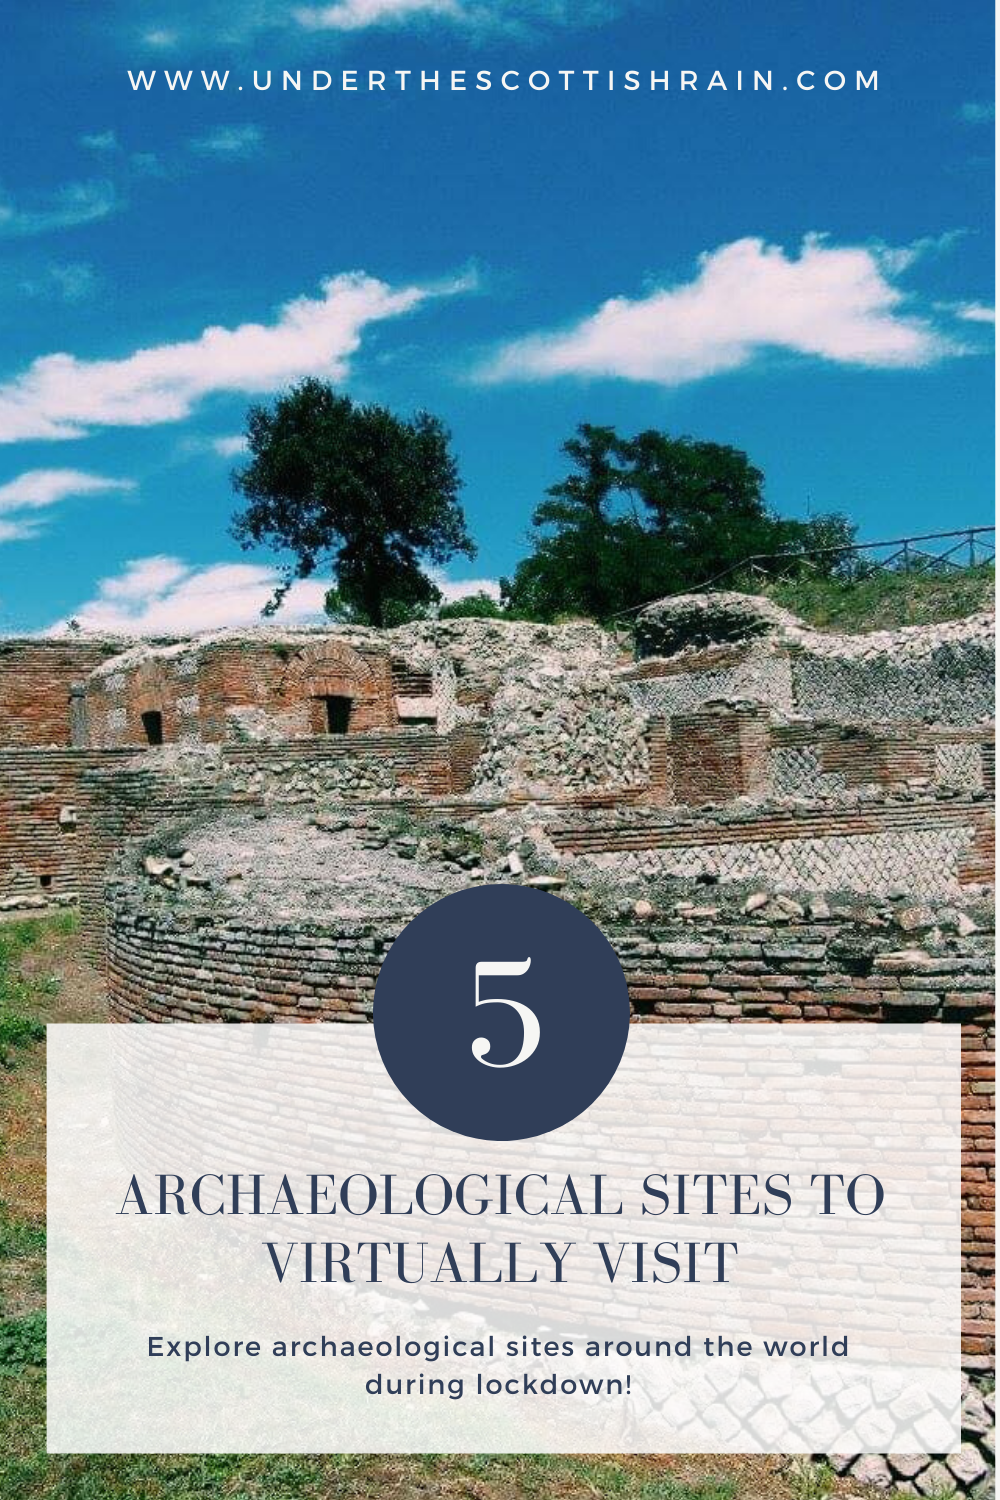 Pinterest Pin with image of Aeclanum and tag '5 archaeological sites to virtually visit'